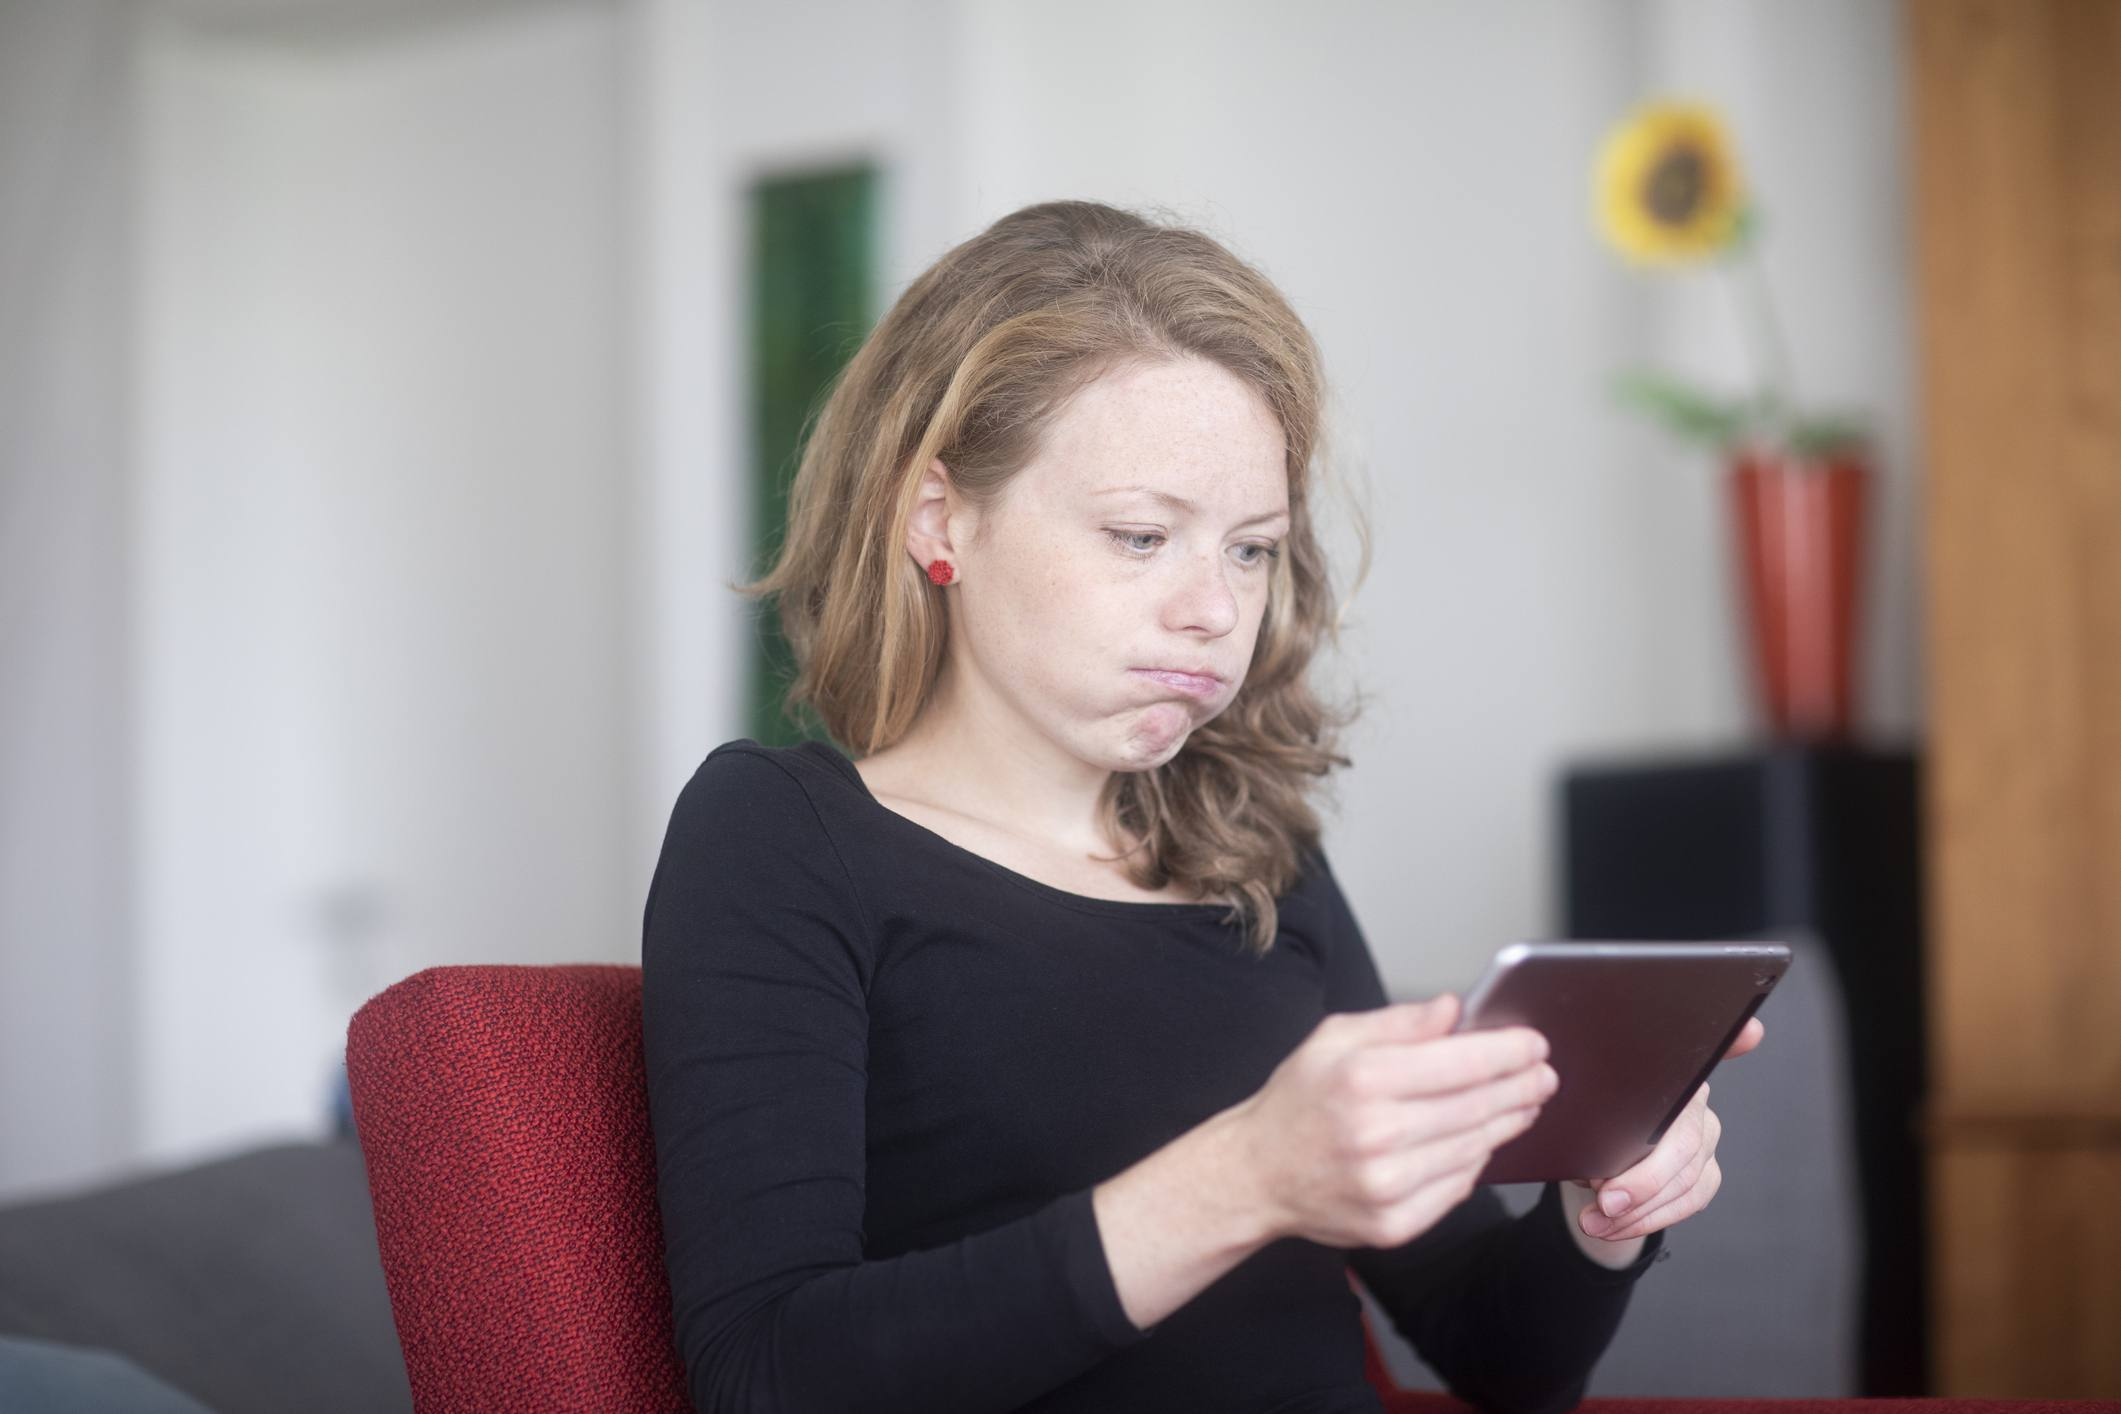 Woman using a digital tablet blowing her cheeks